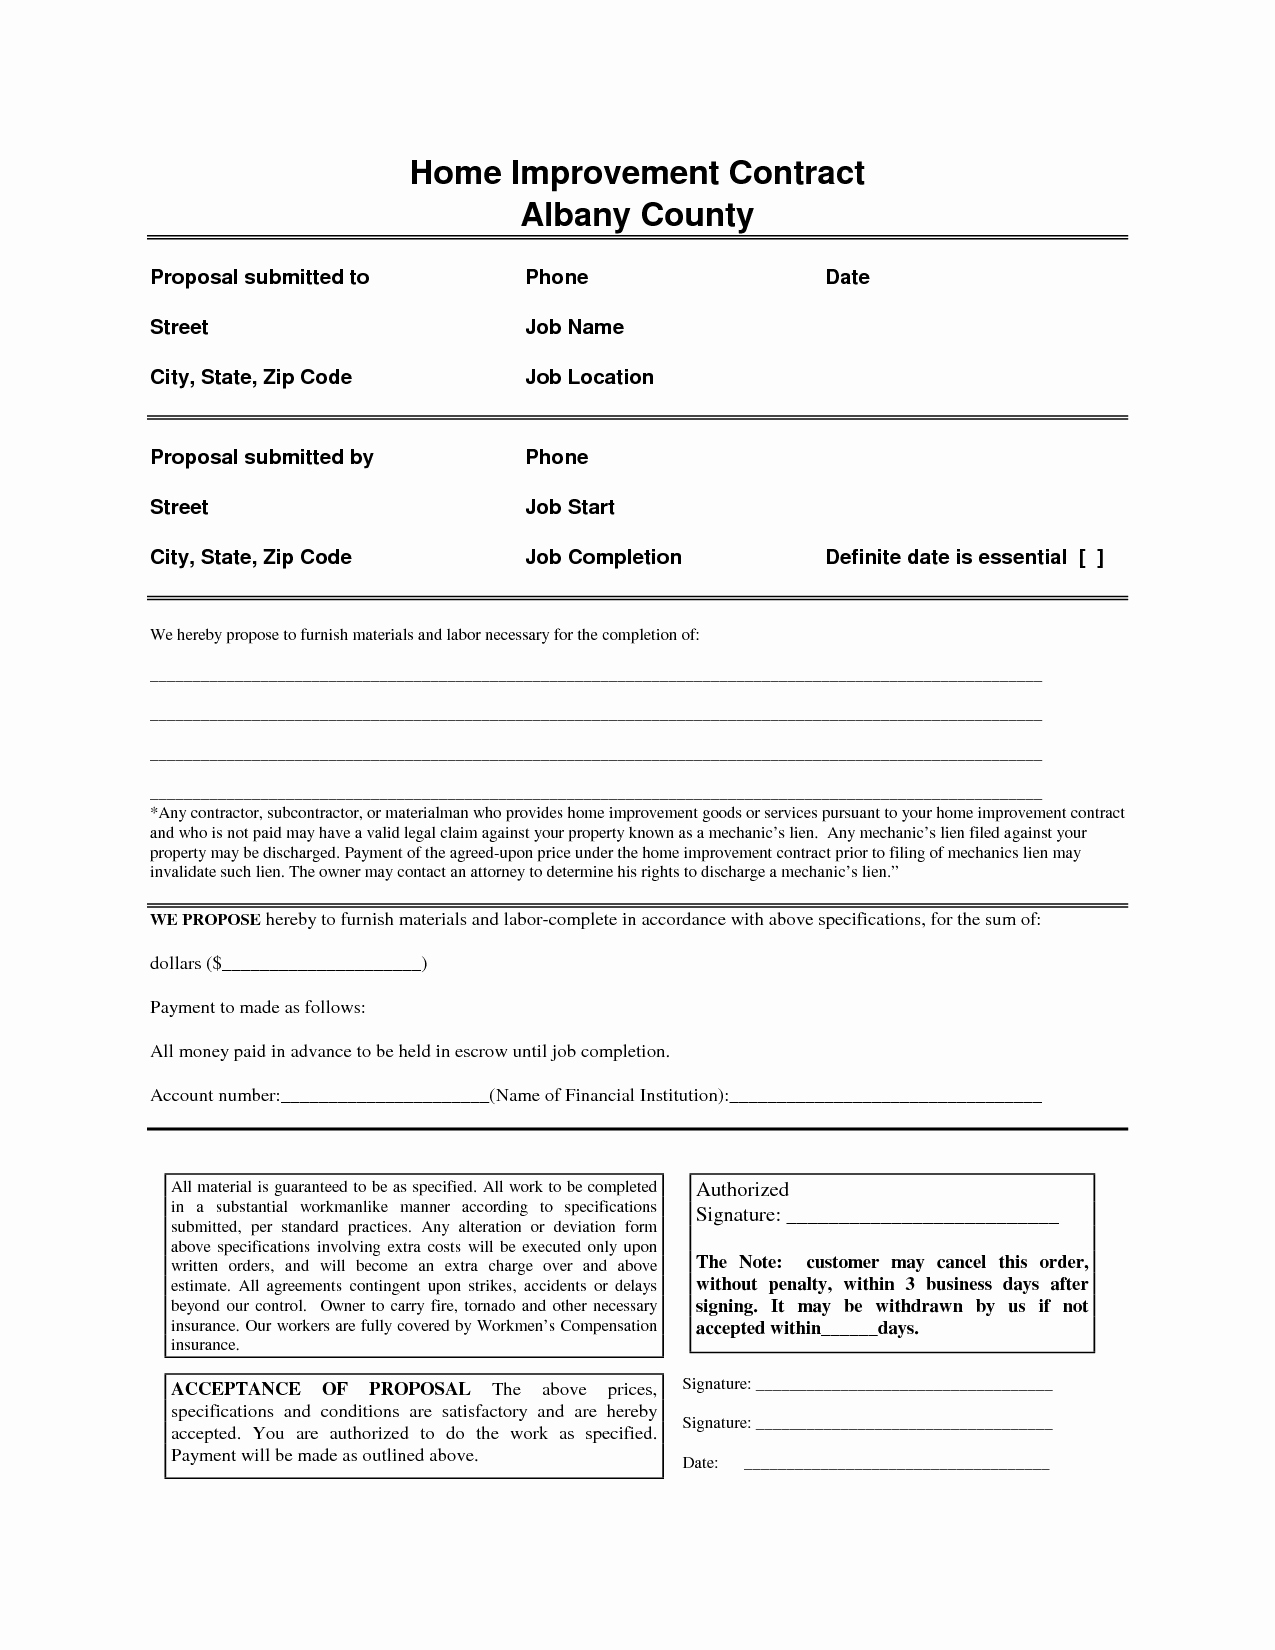 Home Improvement Contract Template Awesome Home Improvement Contract Free Printable Documents